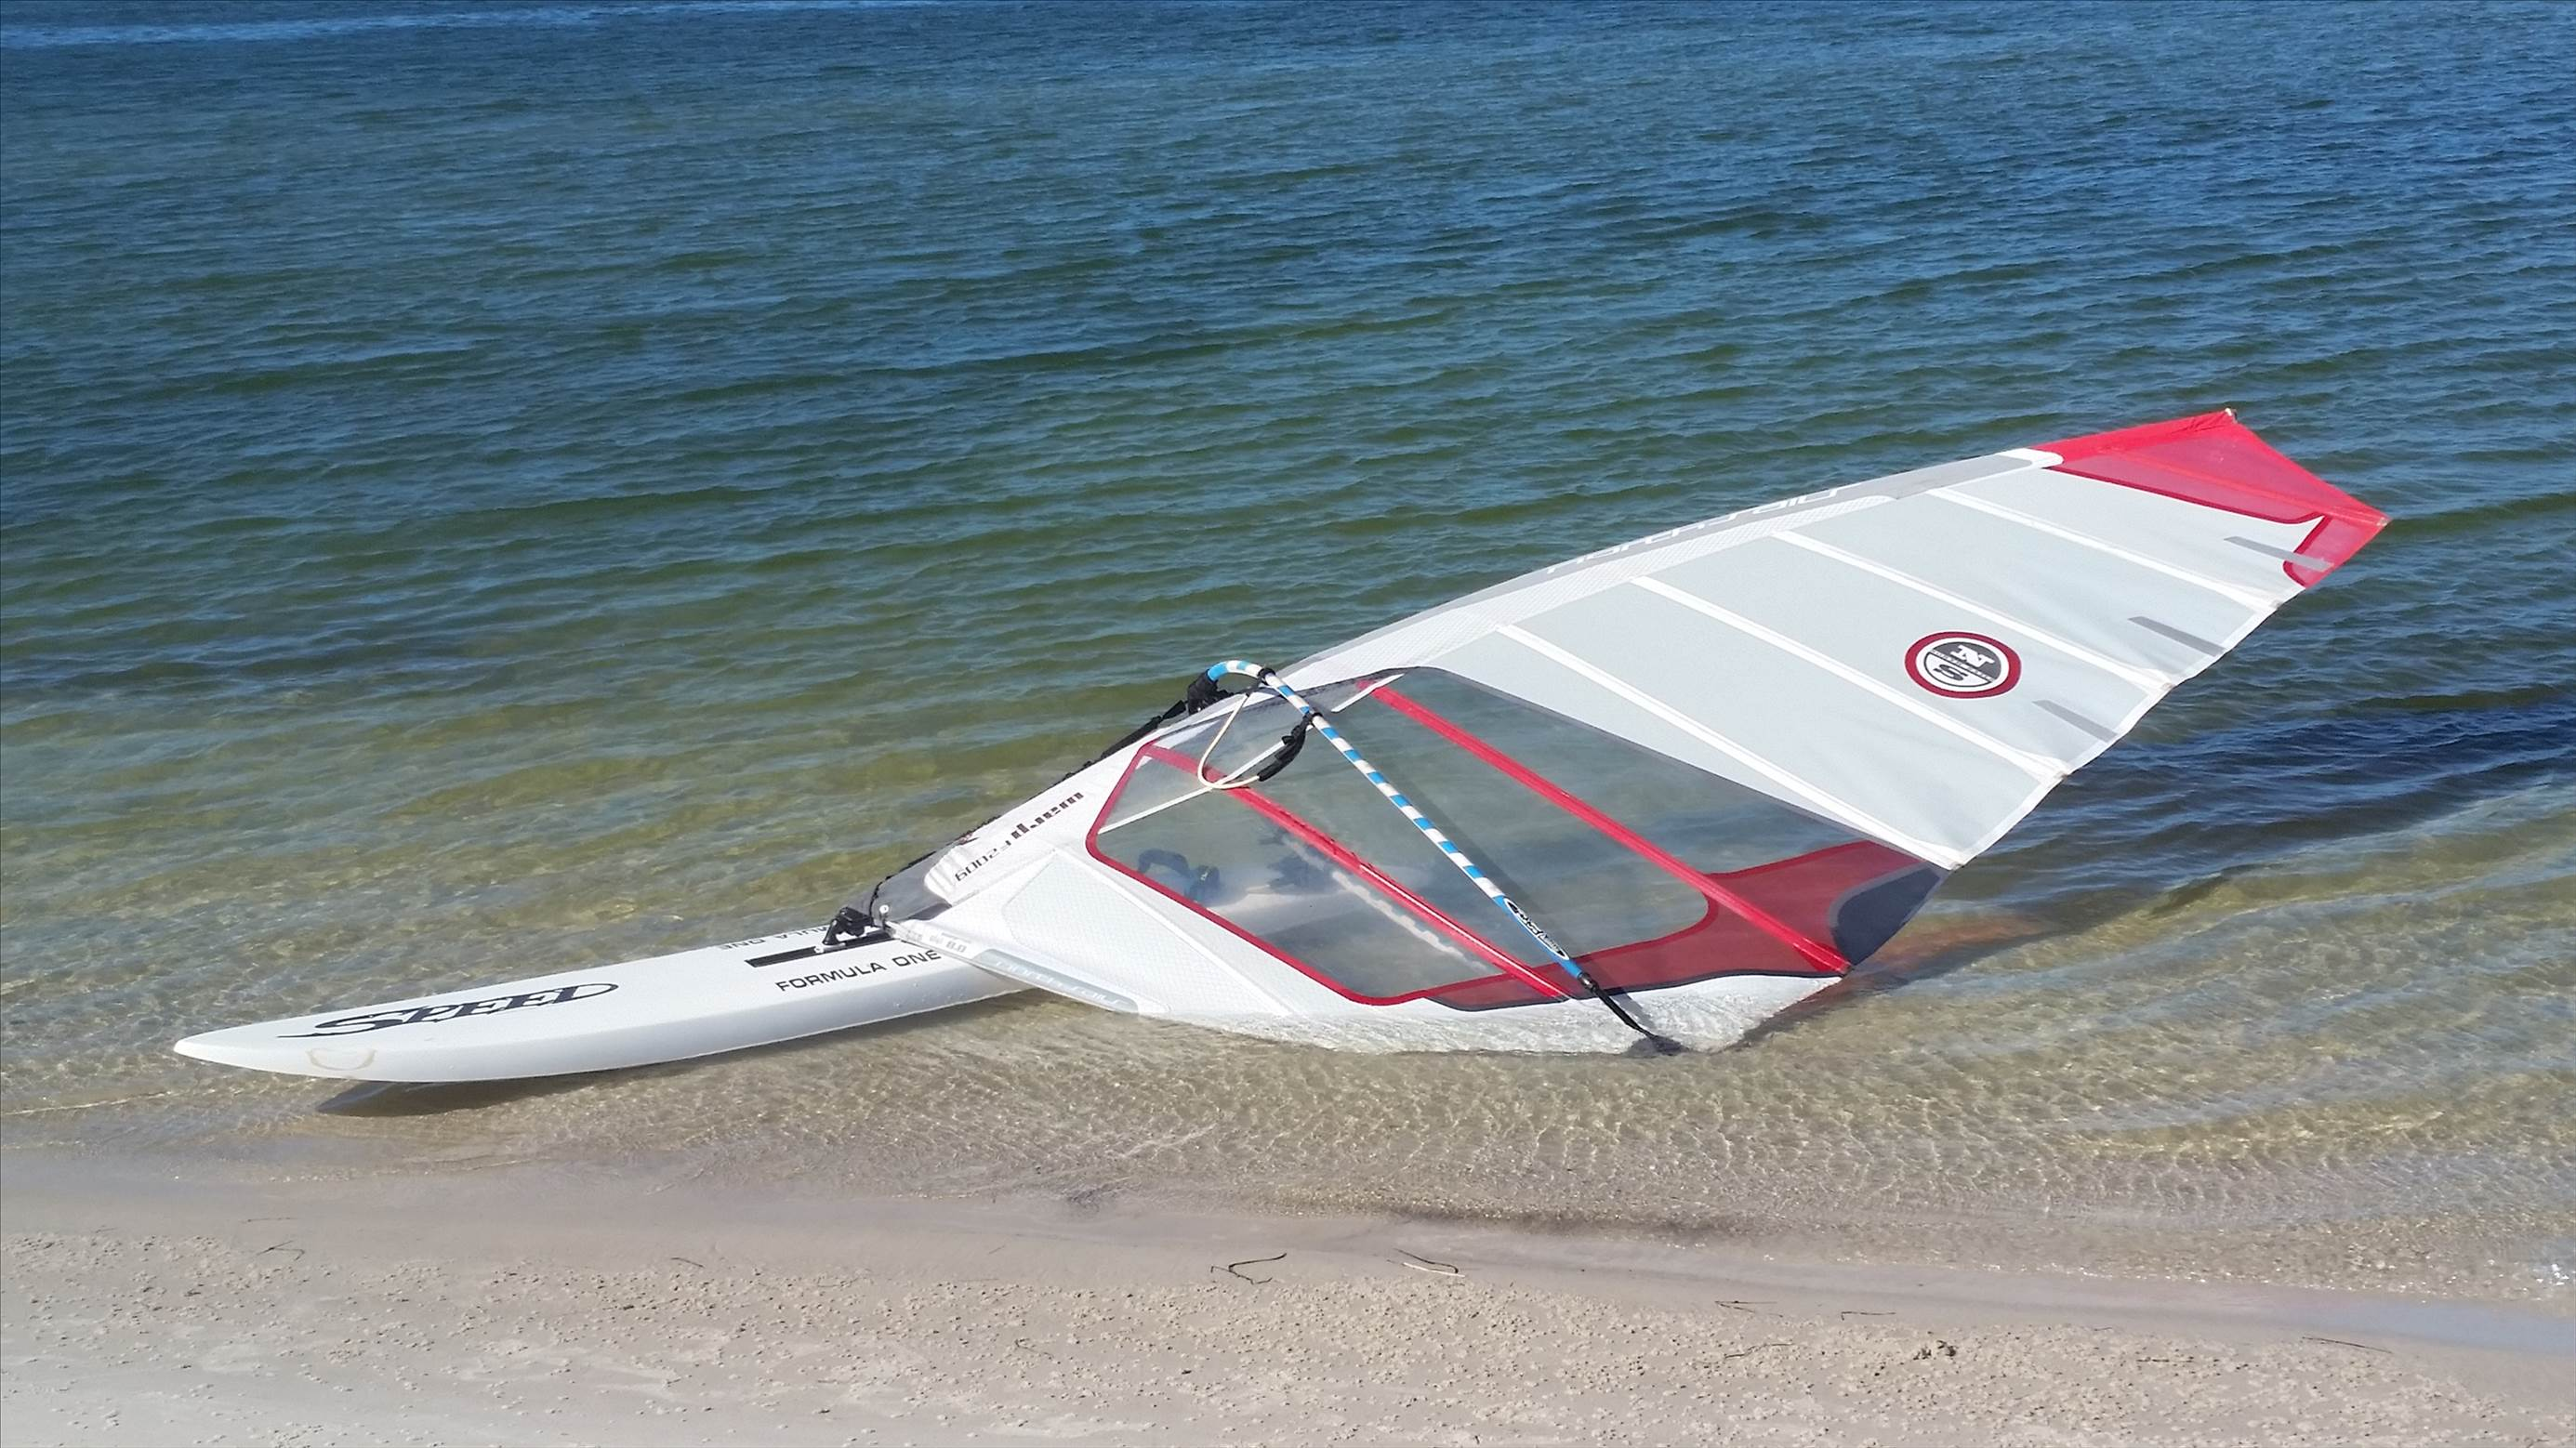 Raceboard Windsurfing Revival Now S The Time Windsurfing Forums Page 1